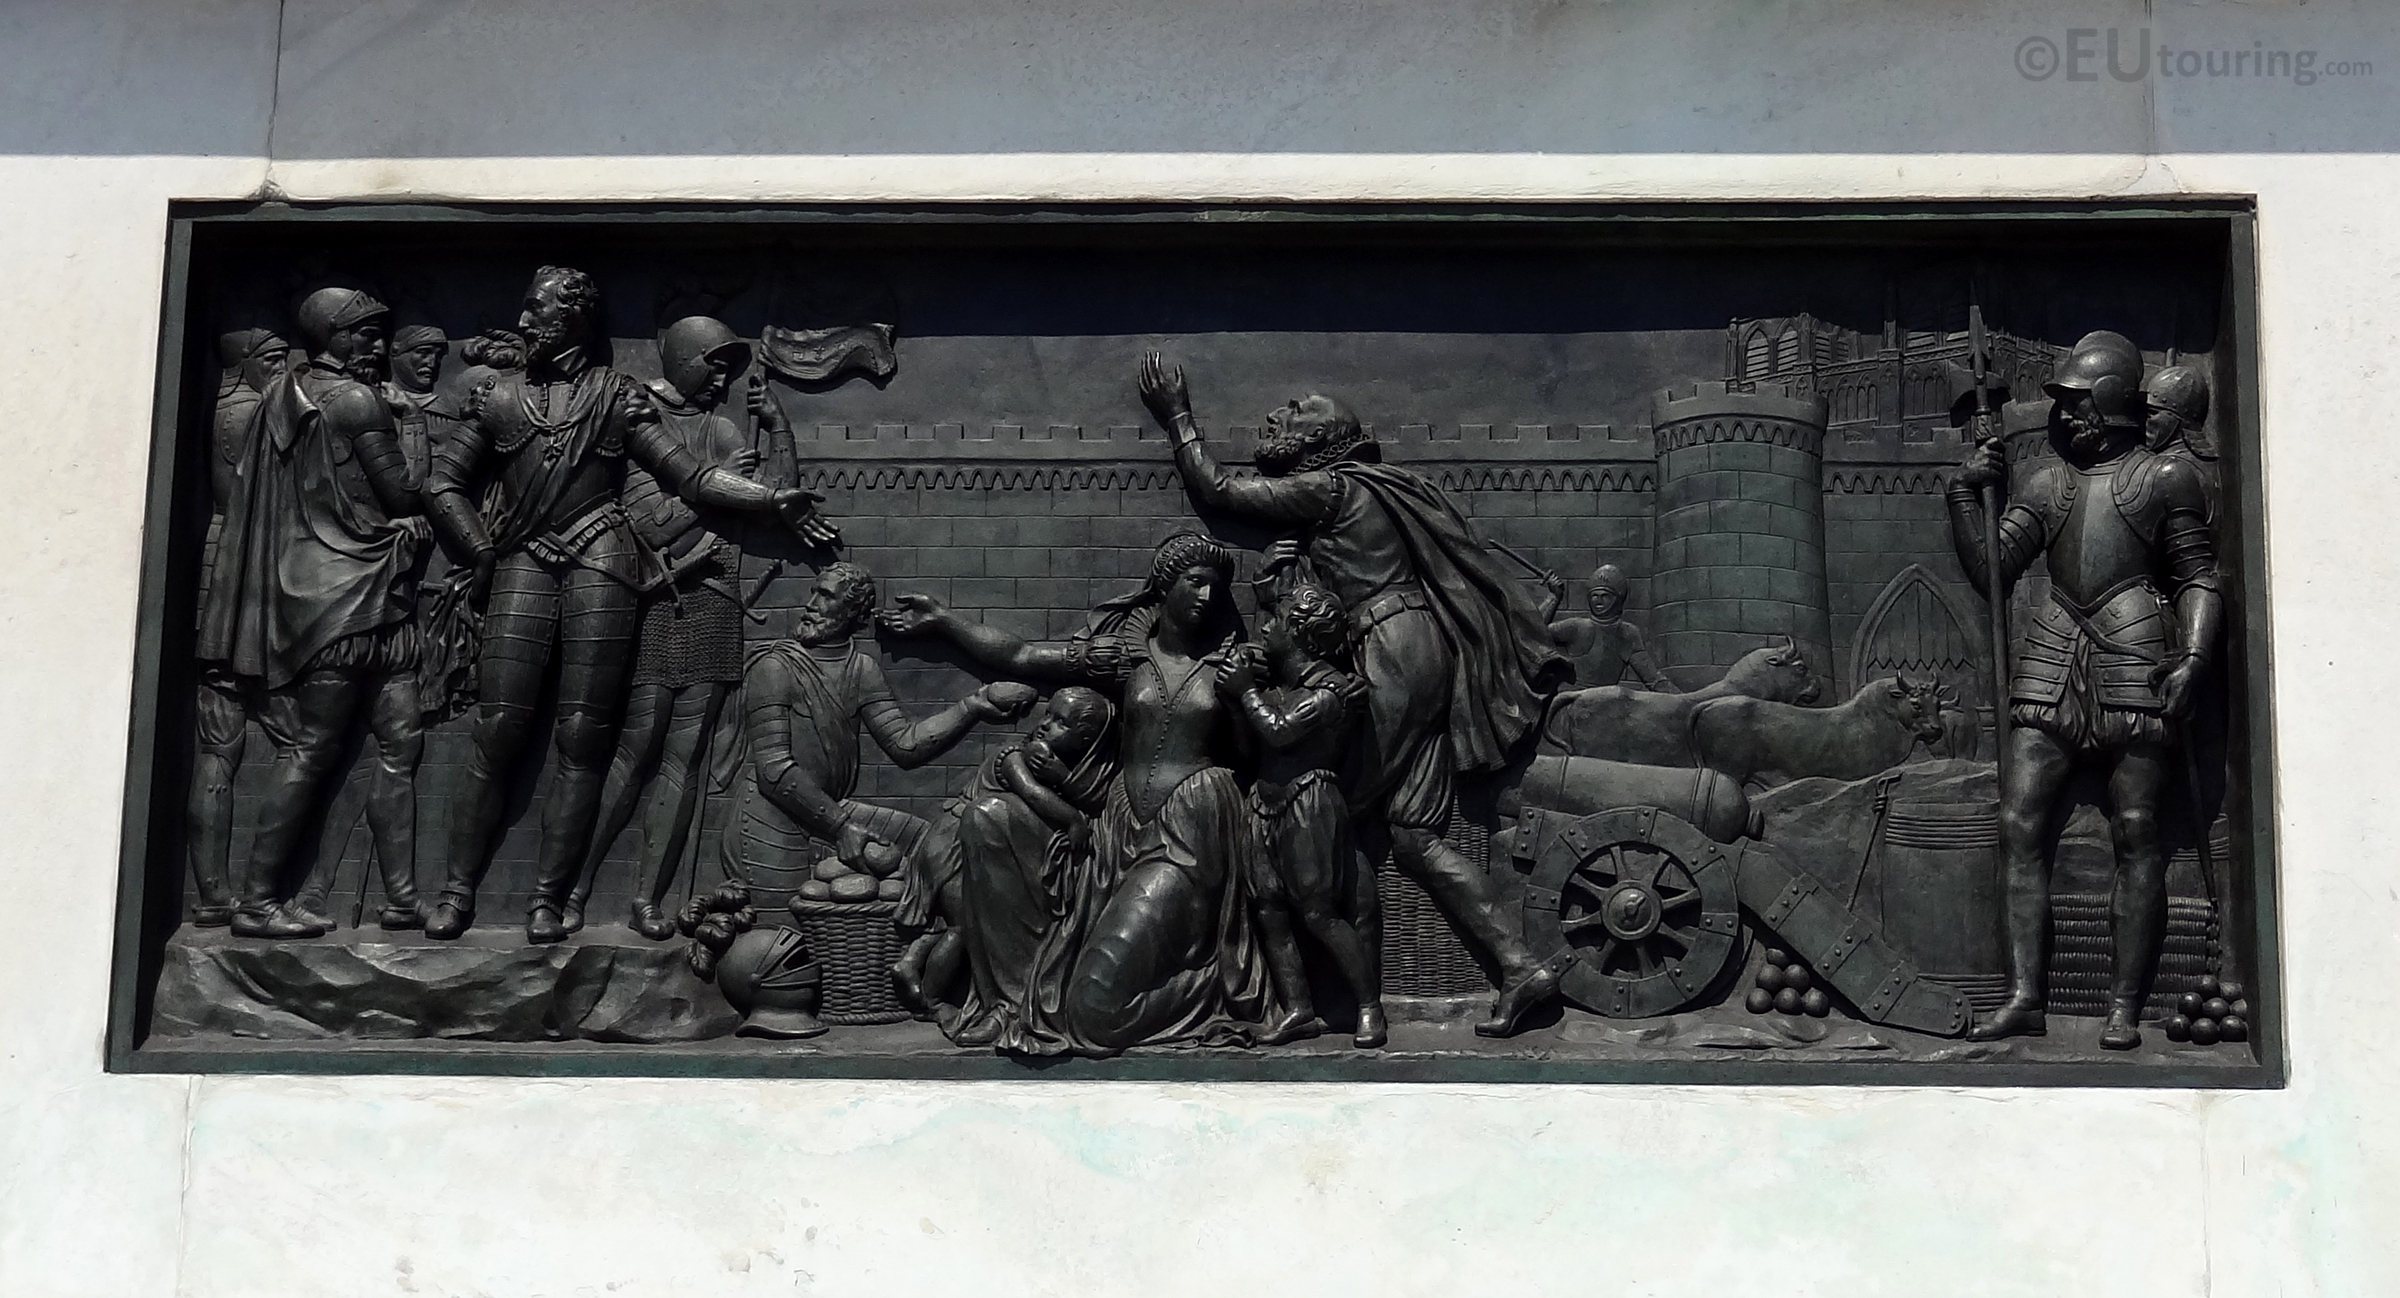 Bas relief on the base